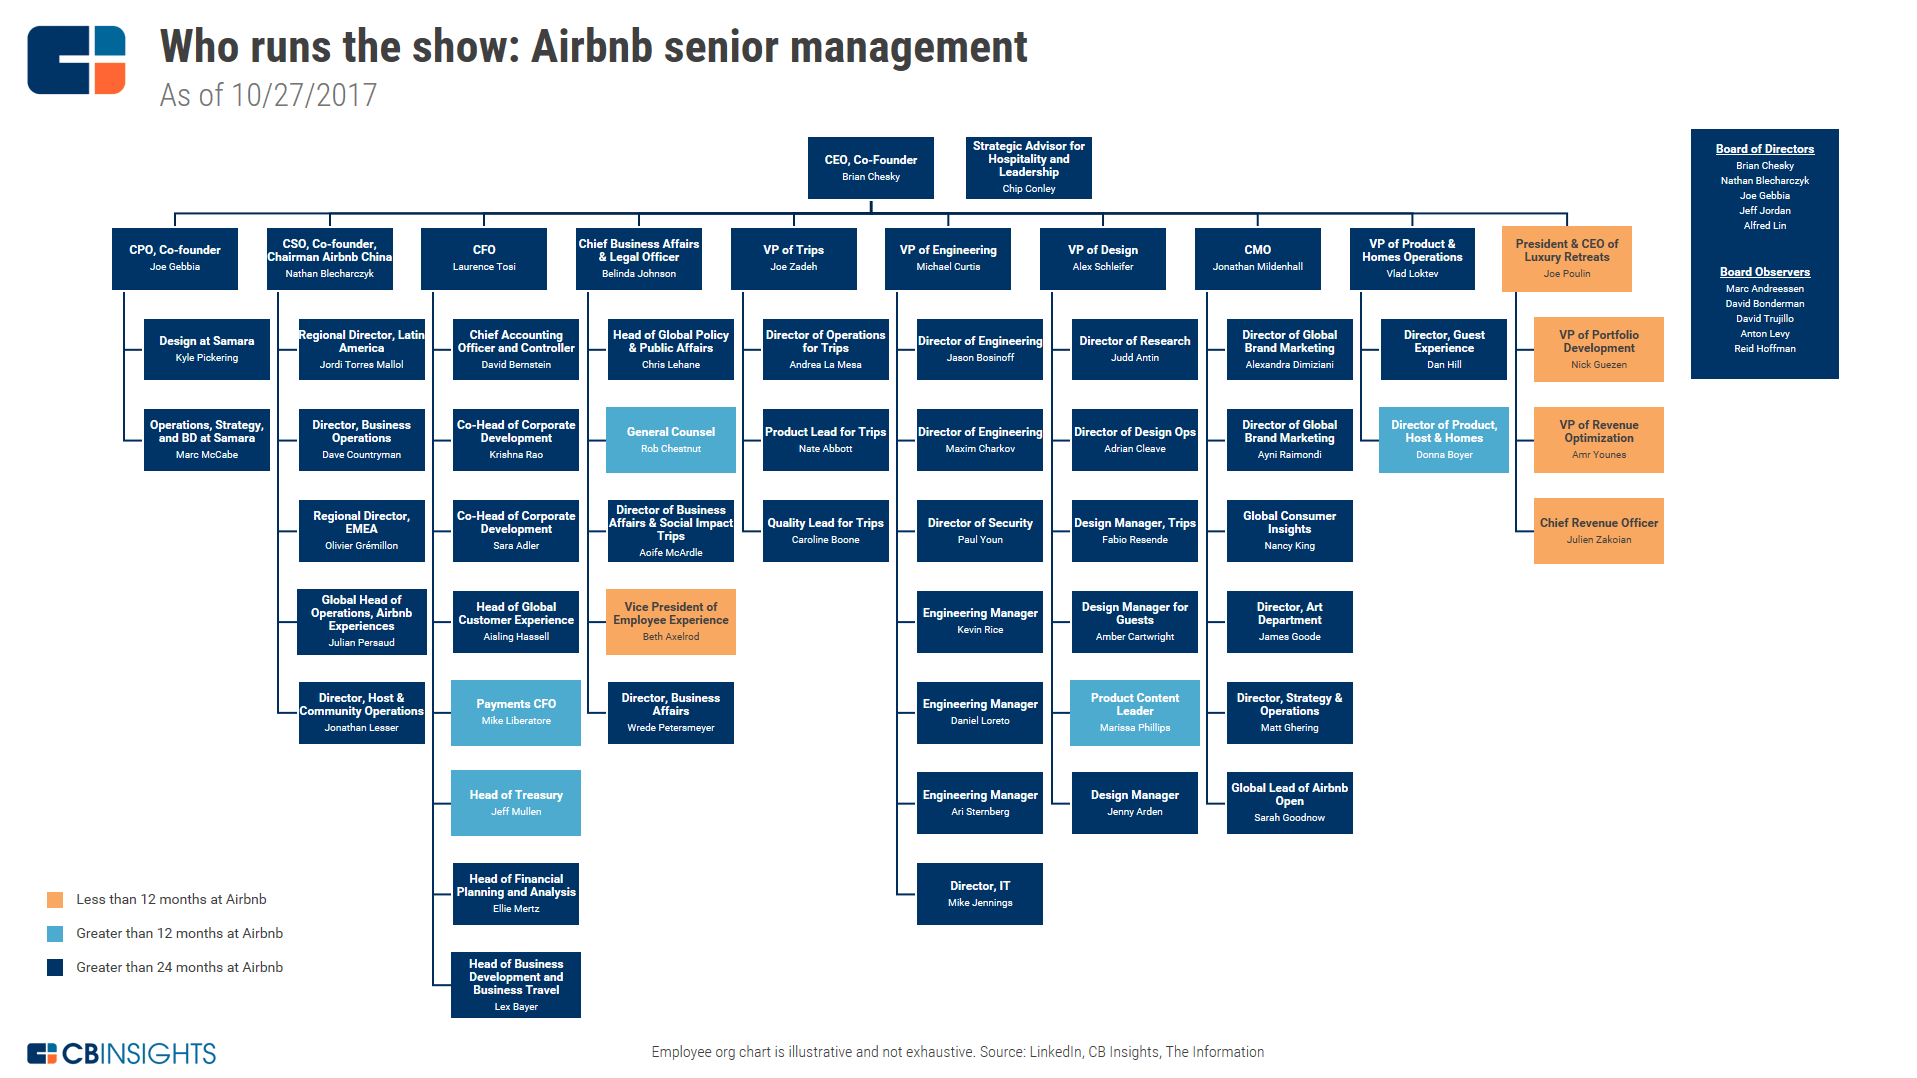 Airbnb Strategy Teardown: Ahead of Potential IPO, Airbnb